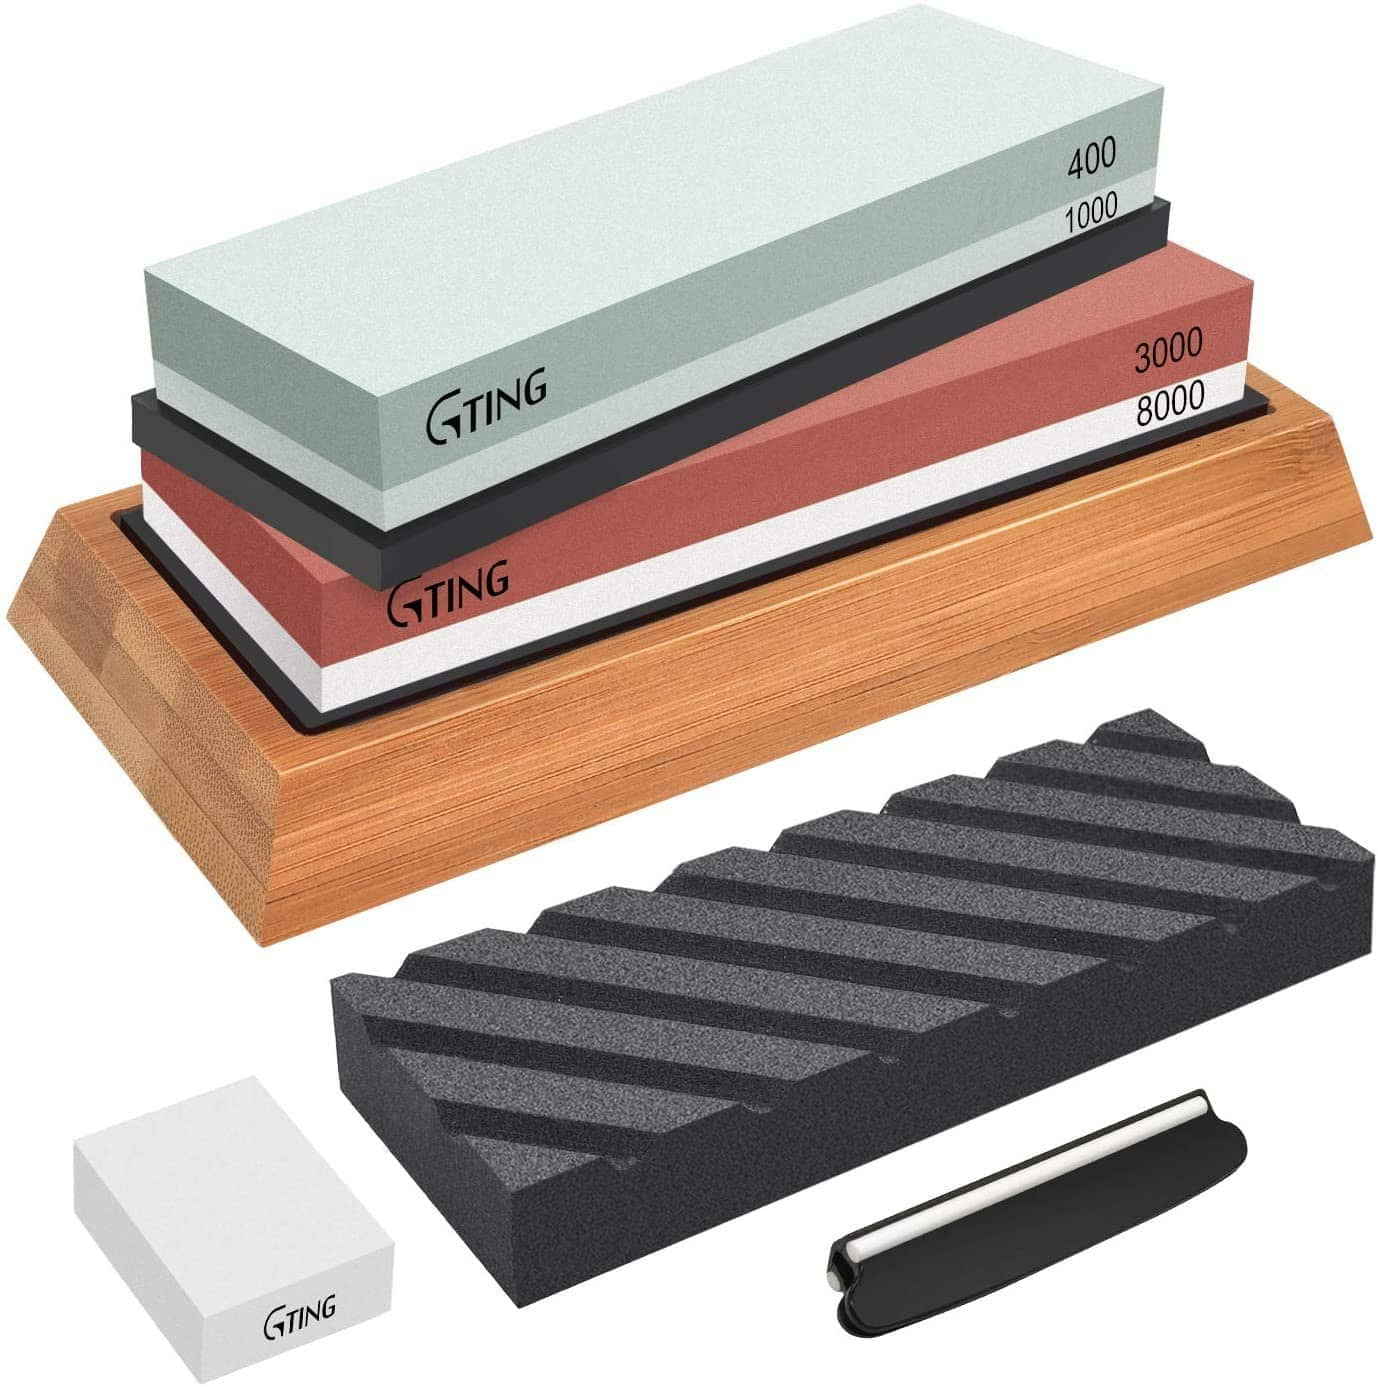 G-TING Knife Sharpening Whetstone Kit  (400/1000 and 3000/8000 Grit) @ Amazon 50% off AC / Free Prime Shipping $19.99